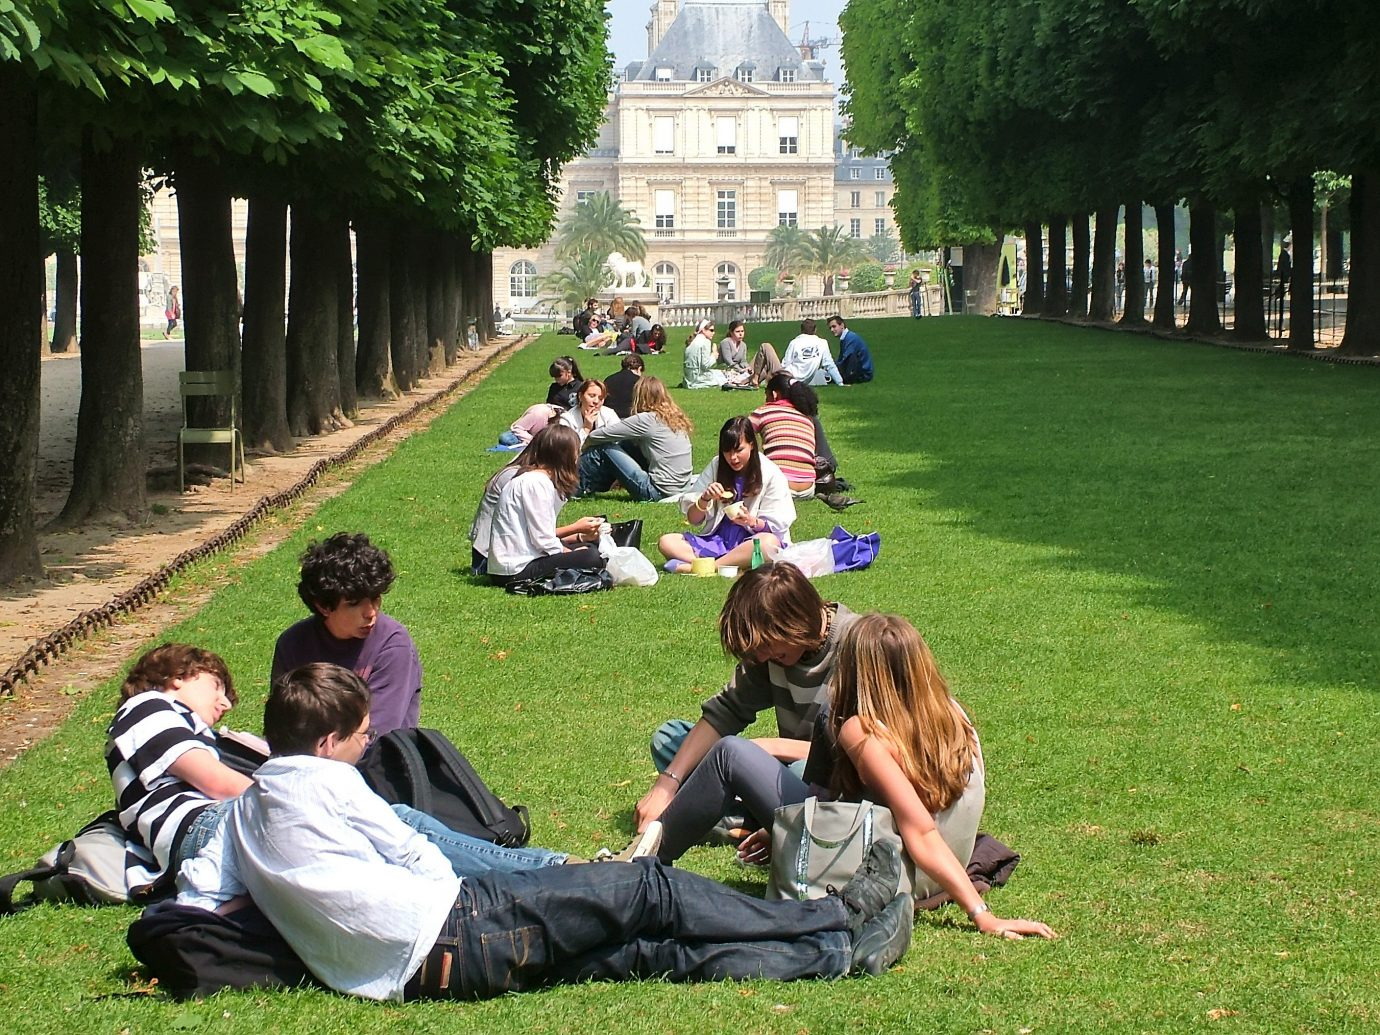 Romance Trip Ideas grass outdoor tree person people park lawn